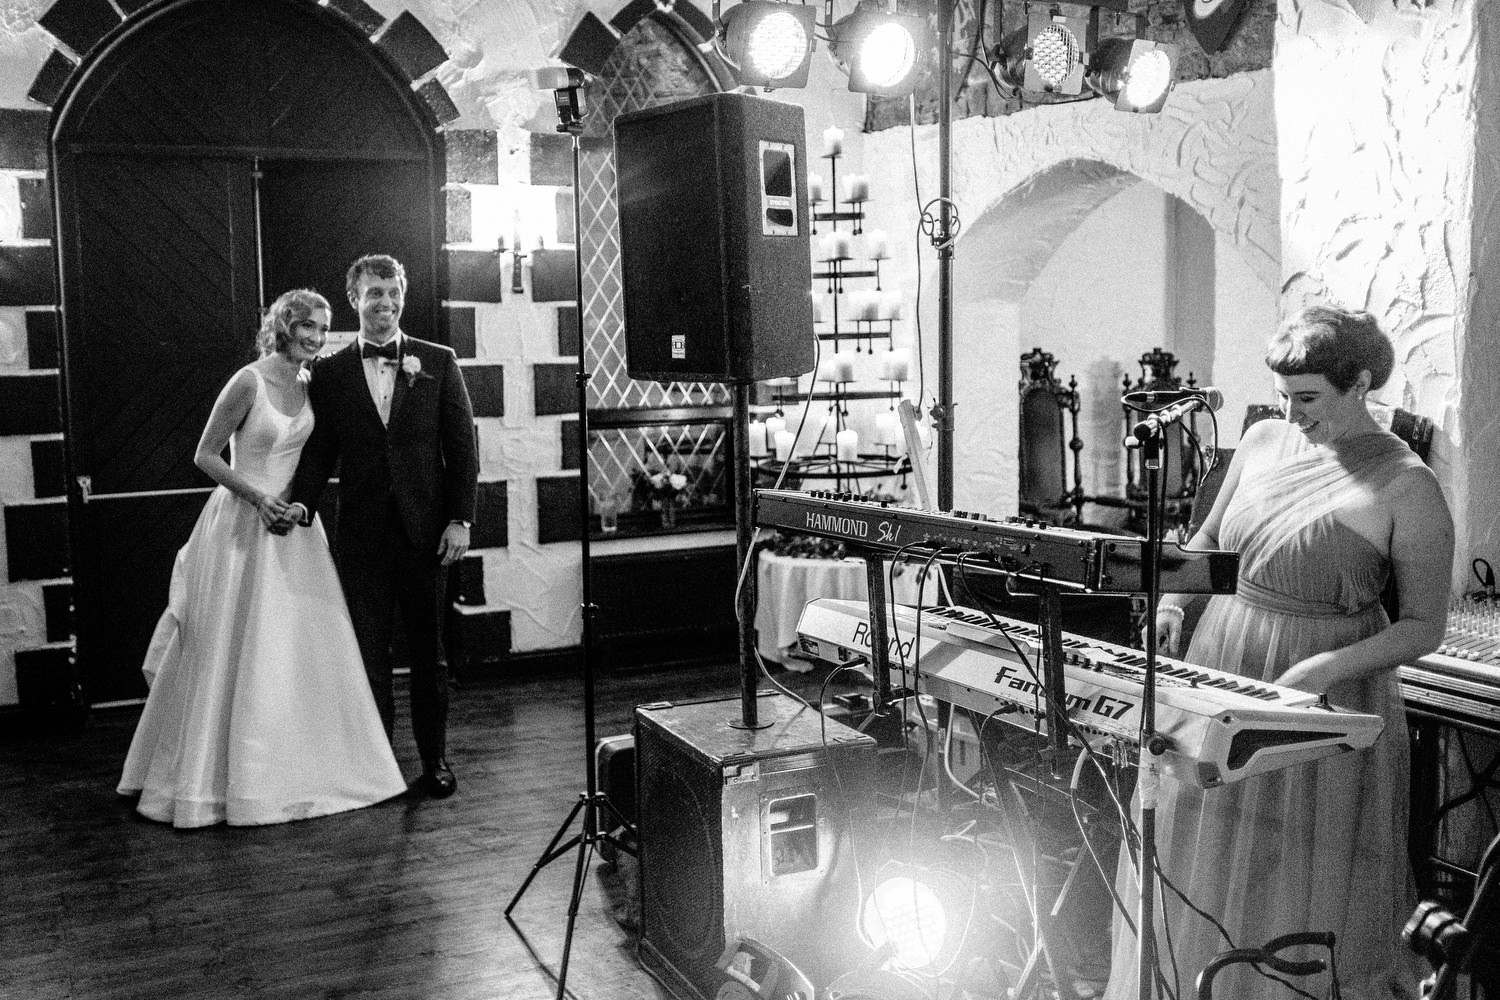 000000000000000000000198_bride_style_vintage_photography_david_mcclelland_ireland_castle_hollywood_kinnity_wedding_photographer_fujifilm